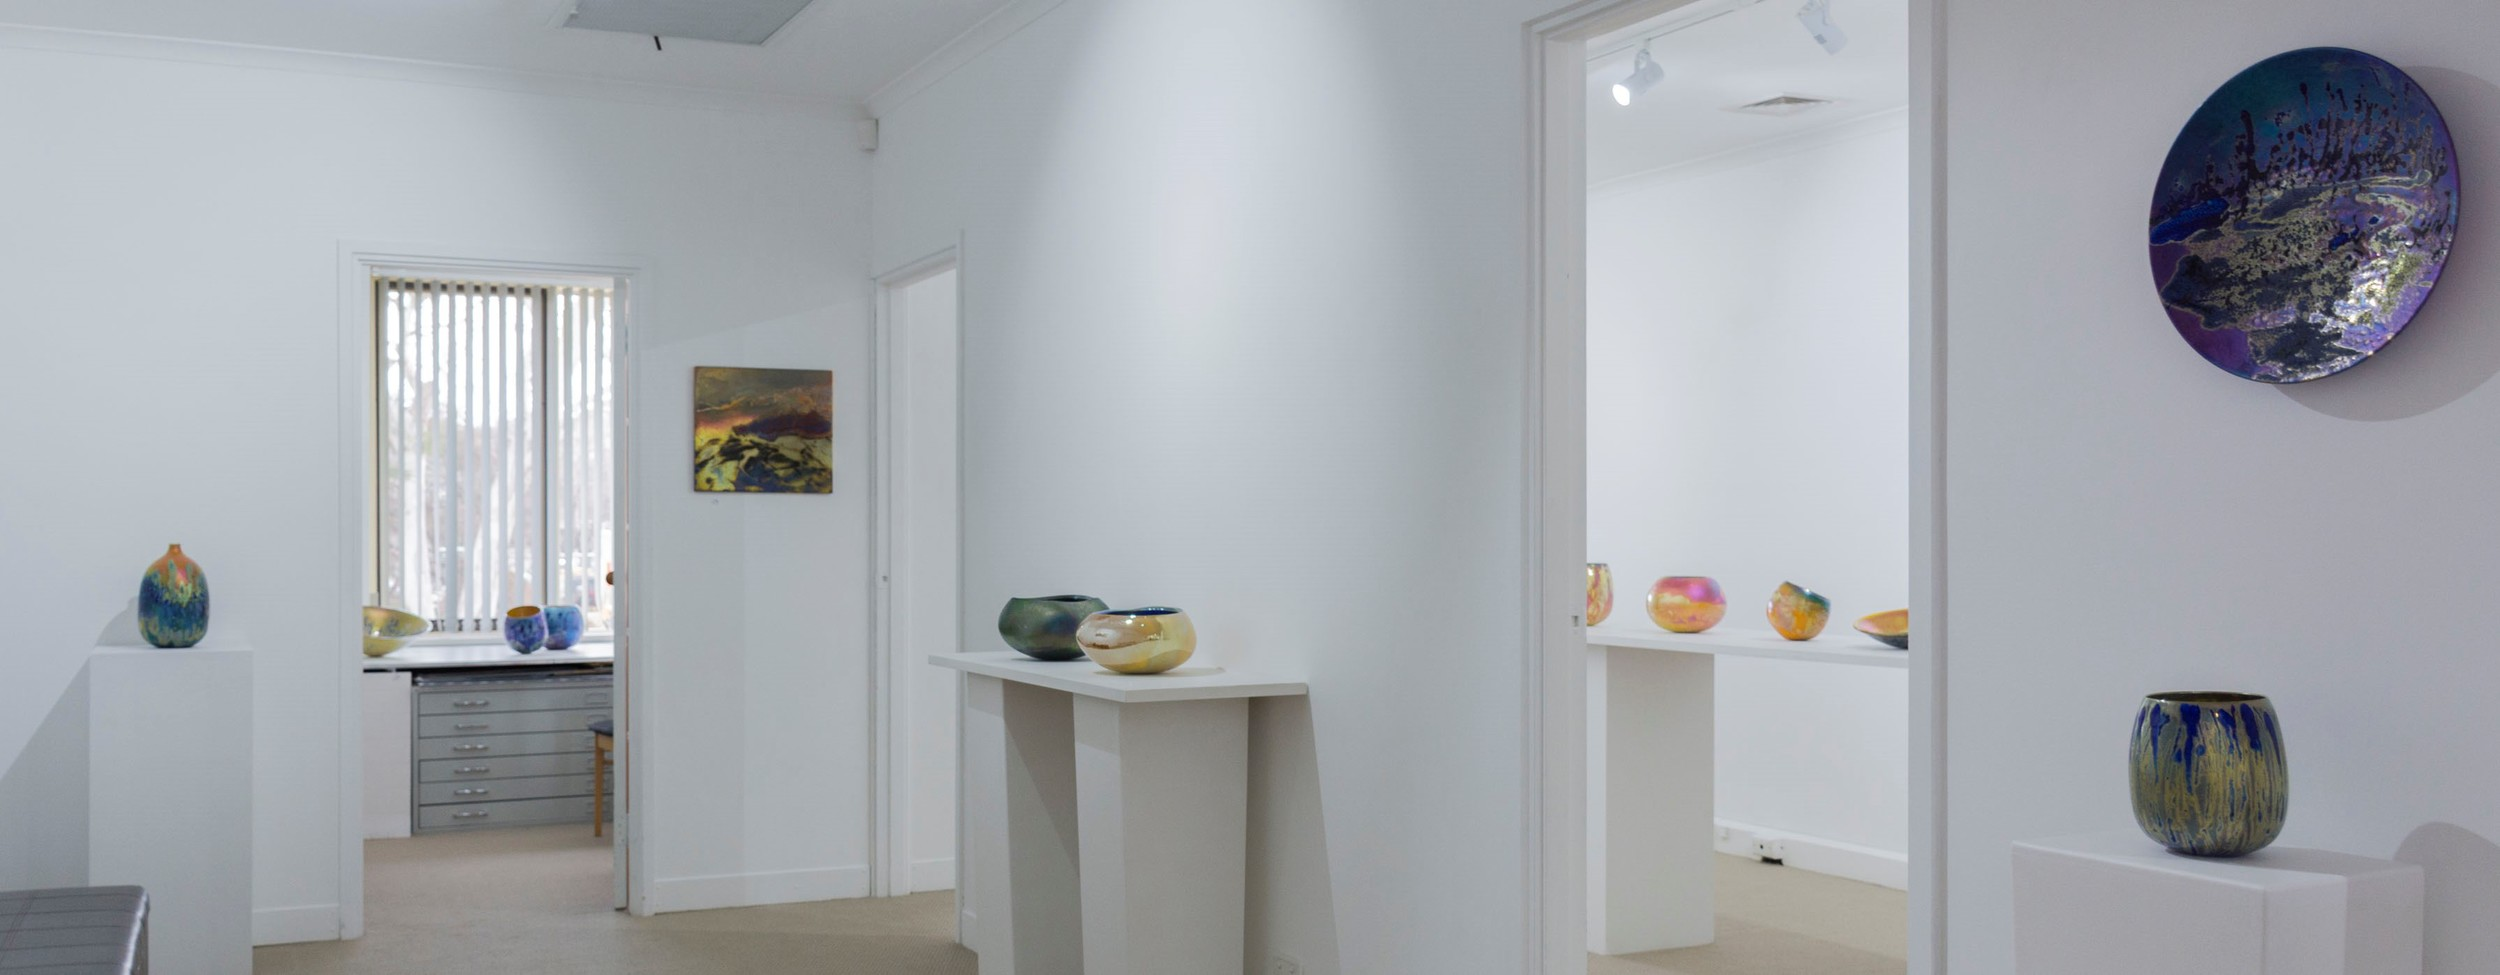 views of the exhibition 10.jpg